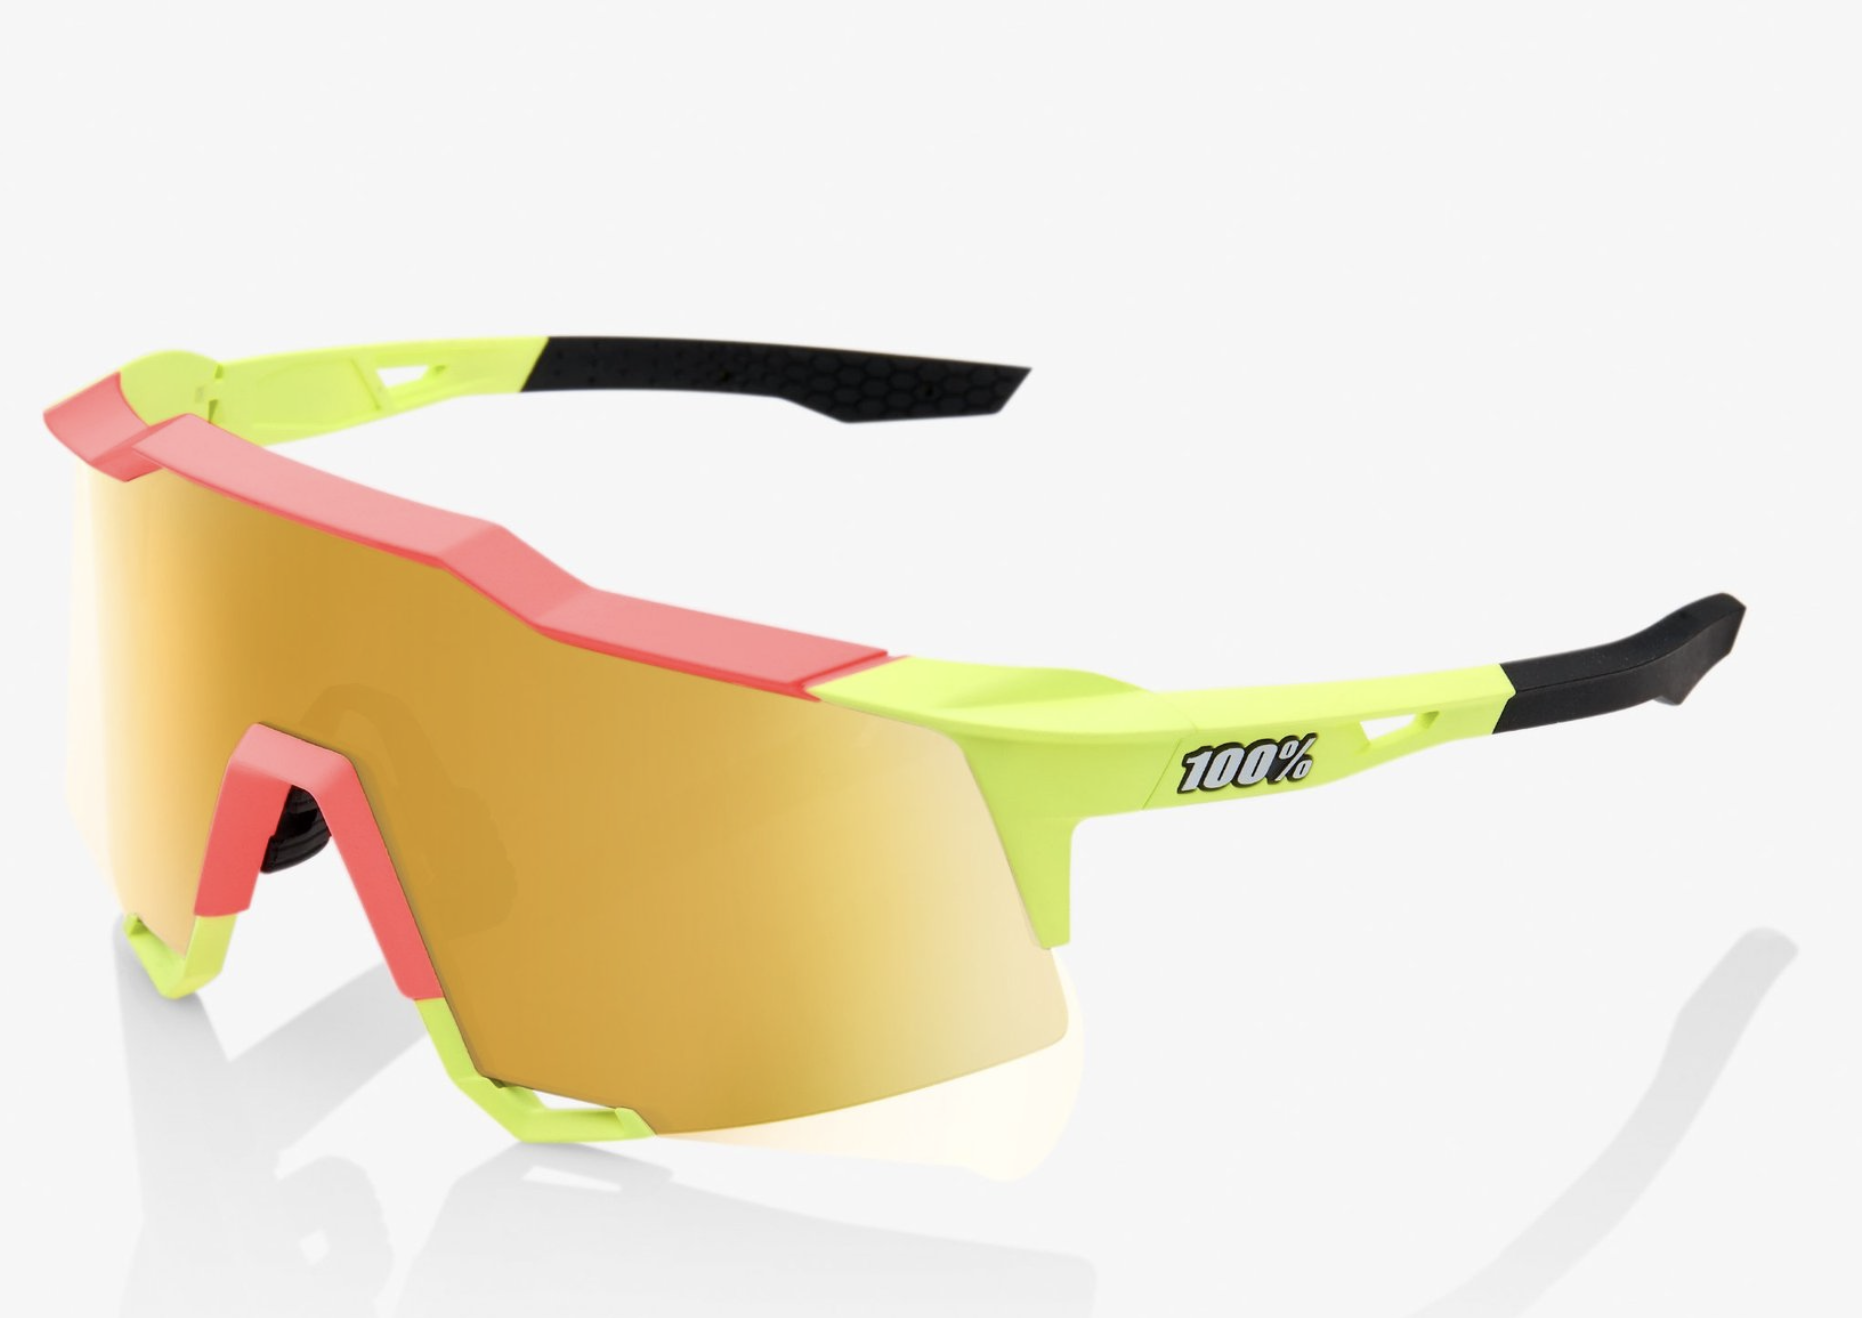 SpeedCraft Sunglasses, Matte Washed Out Neon Yellow frame - Flash Gold Mirror Lens-1